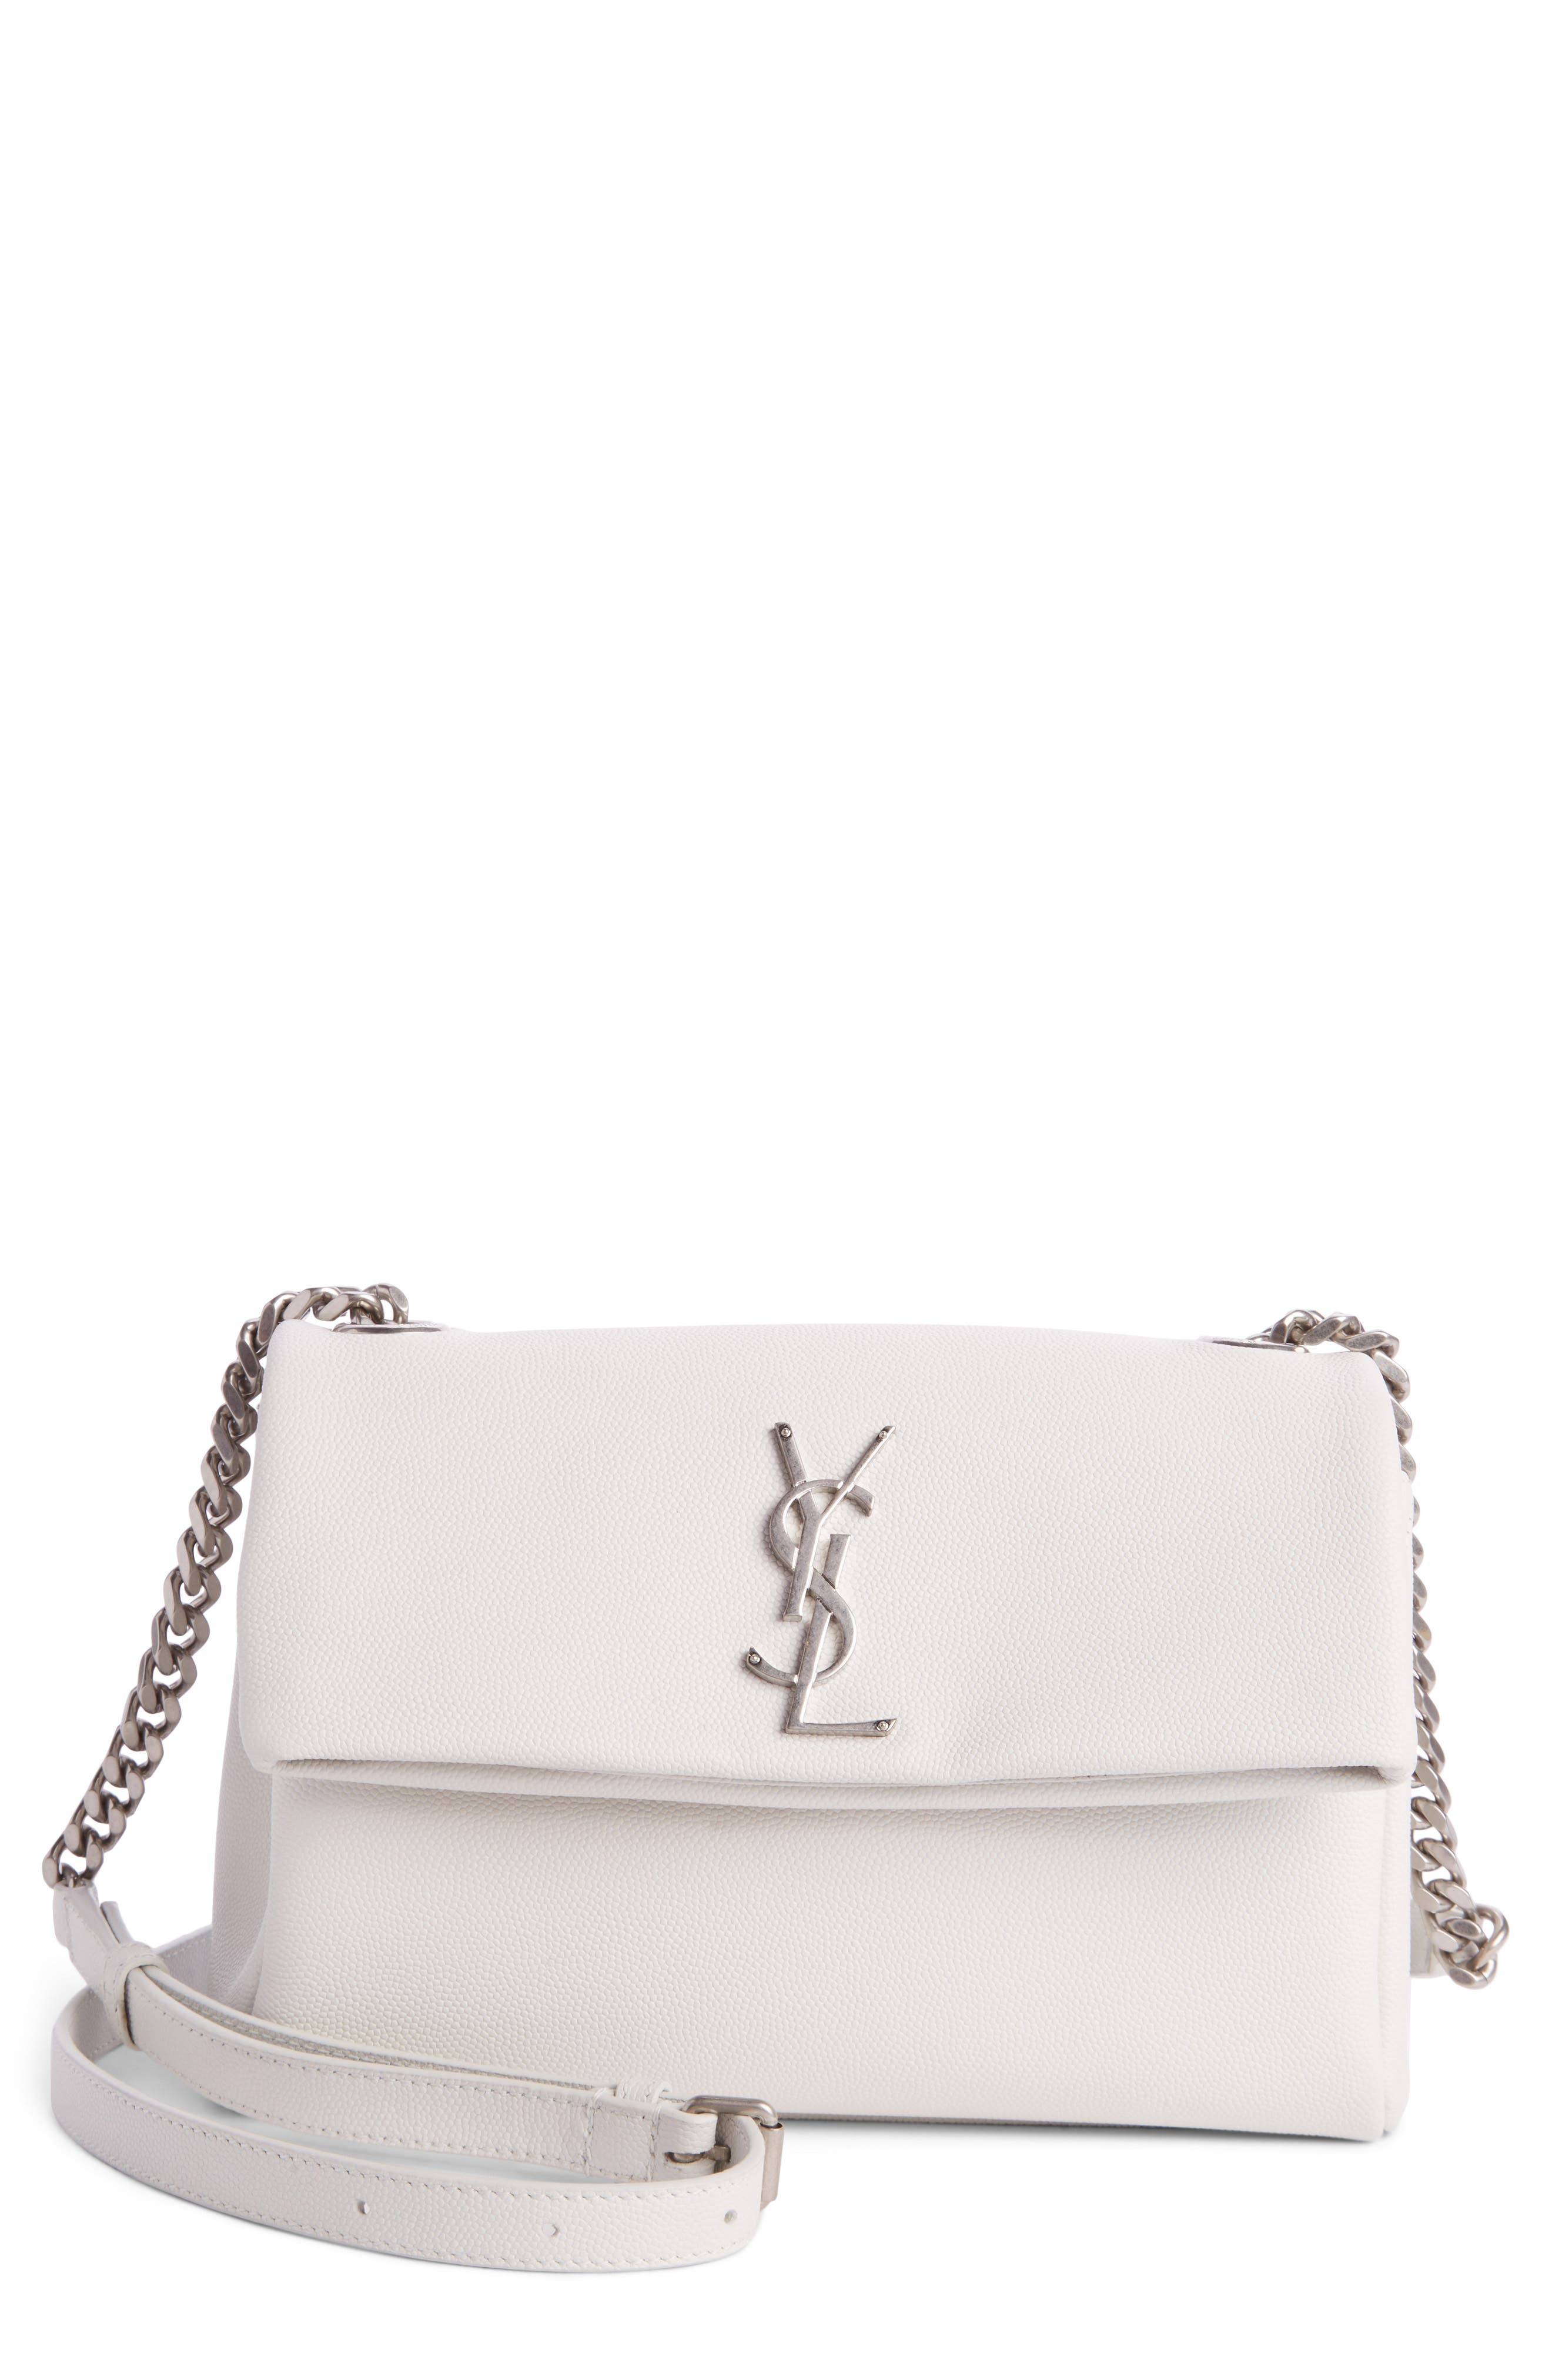 West Hollywood Calfskin Leather Messenger Bag,                         Main,                         color, Pearl White